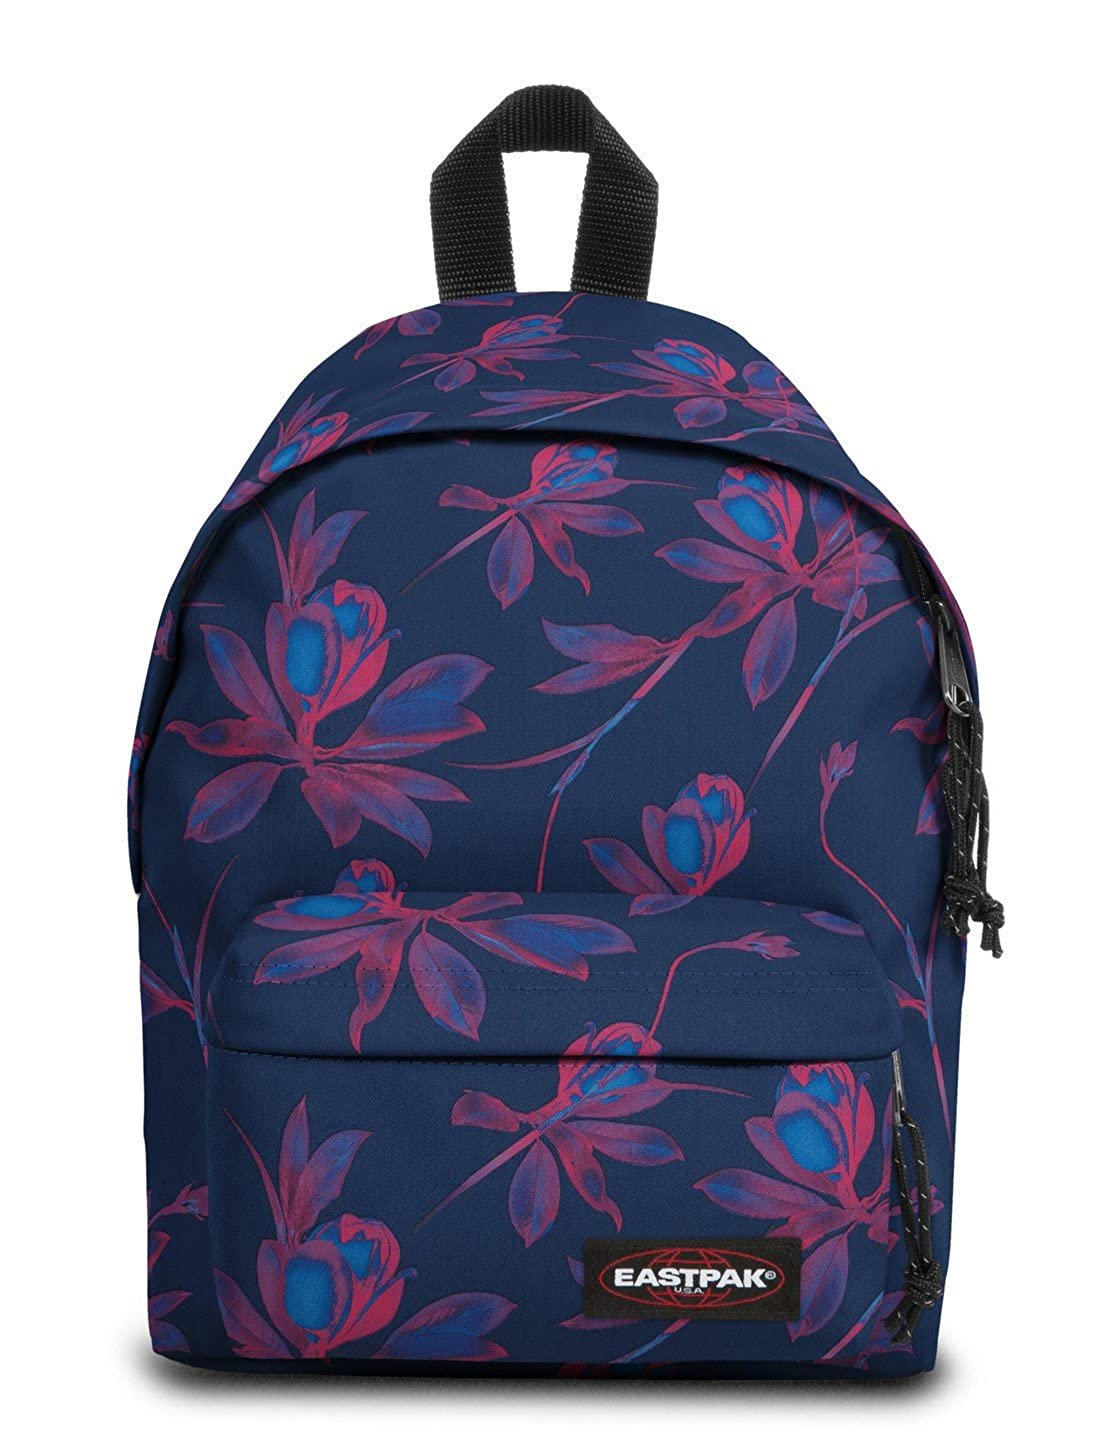 67d21b2f9a ZAINO EASTPAK ORBIT EK043 42T 10L glow pink Size : -: Amazon.co.uk: Clothing